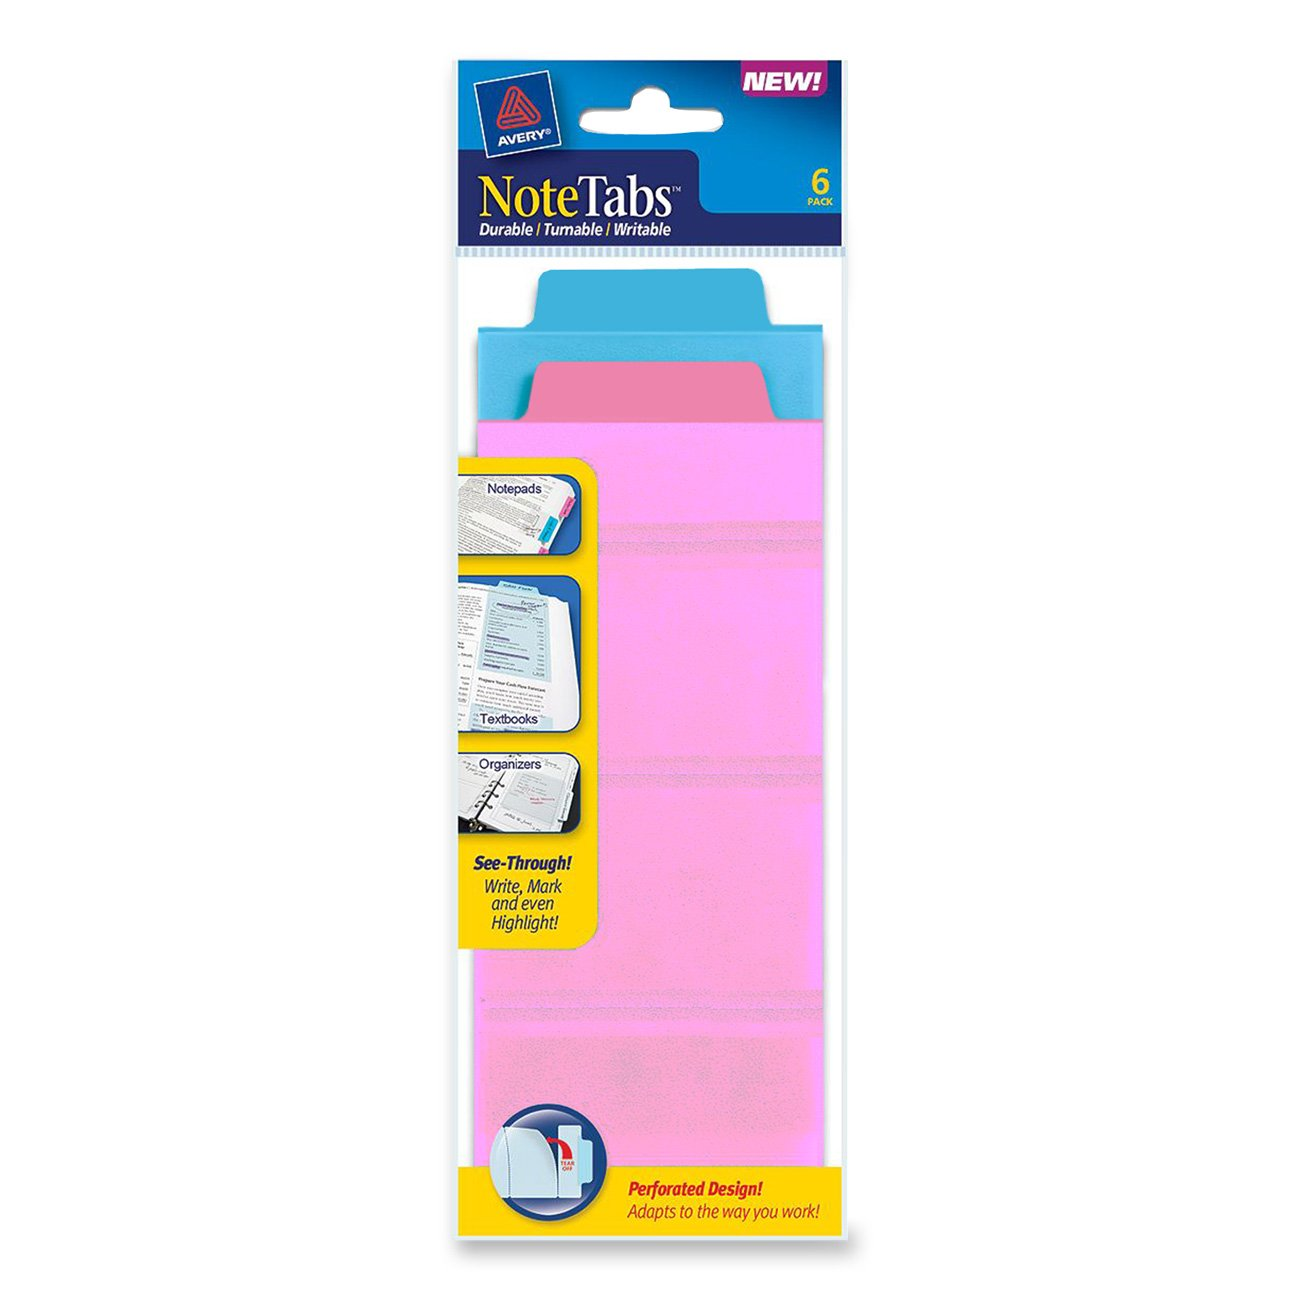 Avery NoteTabs, 3 x 7.5 Inches, Perforated, Neon Blue and Magenta, 12 per pack (16337)